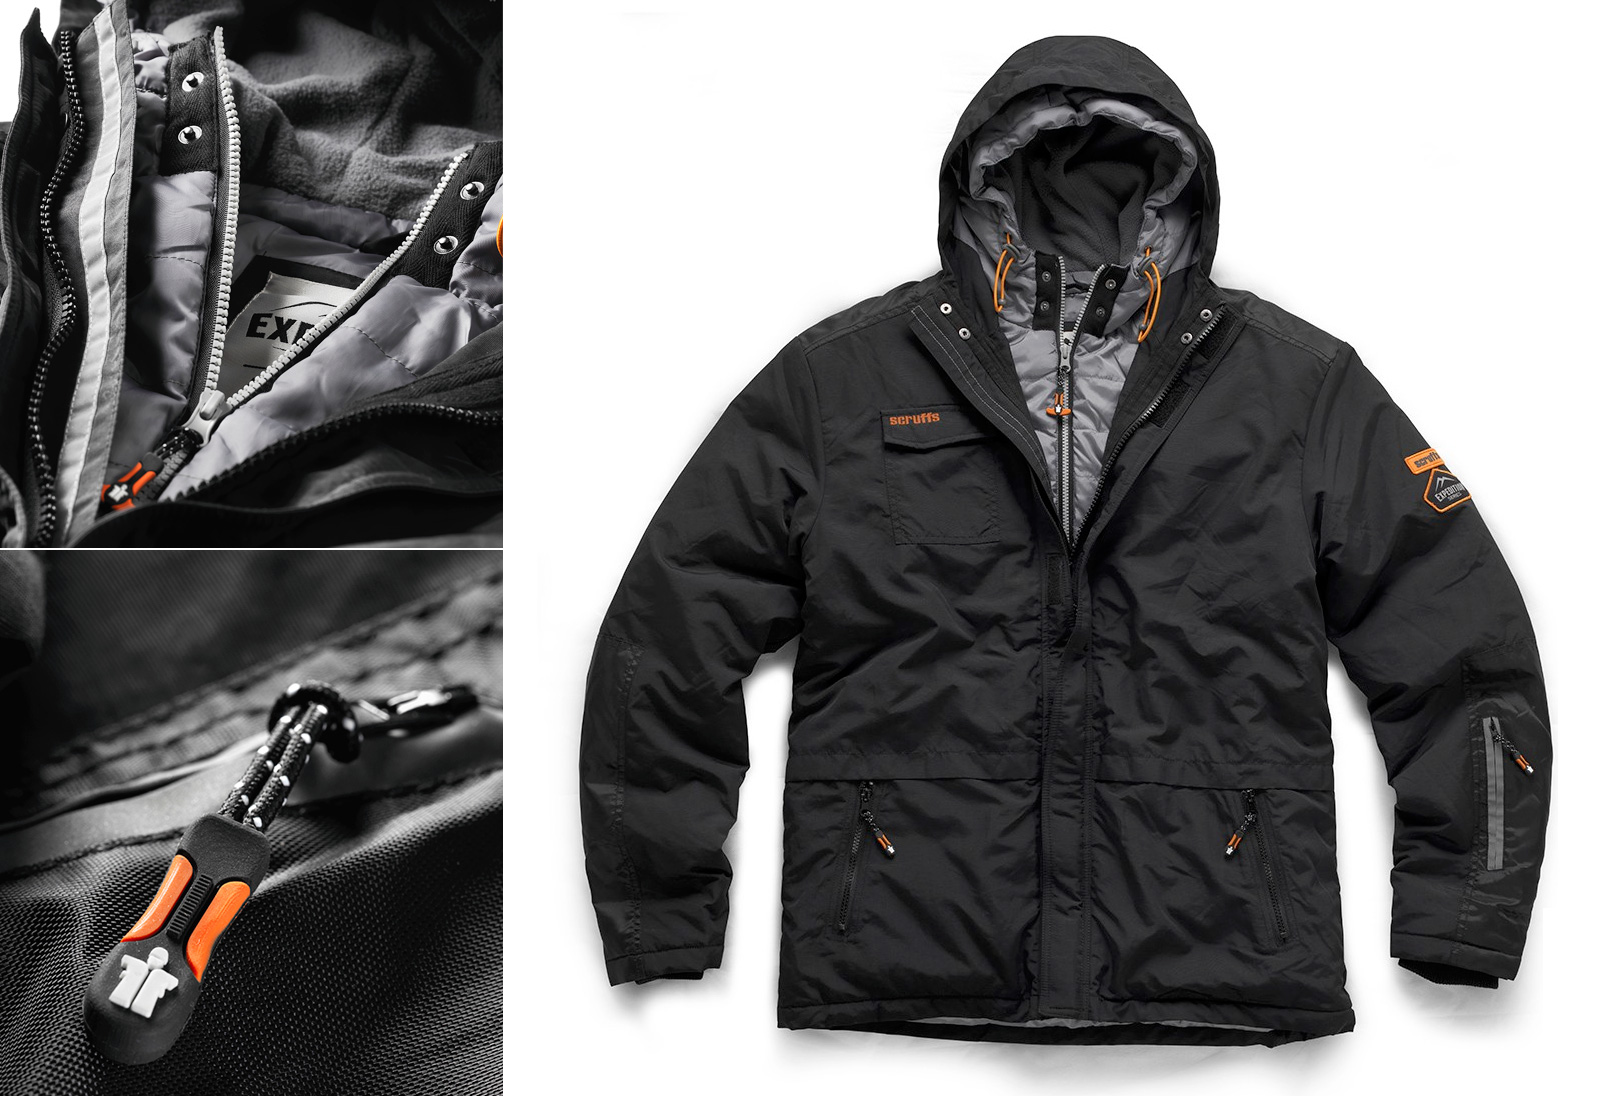 Expedition-Double-Zip-Jacket.jpg